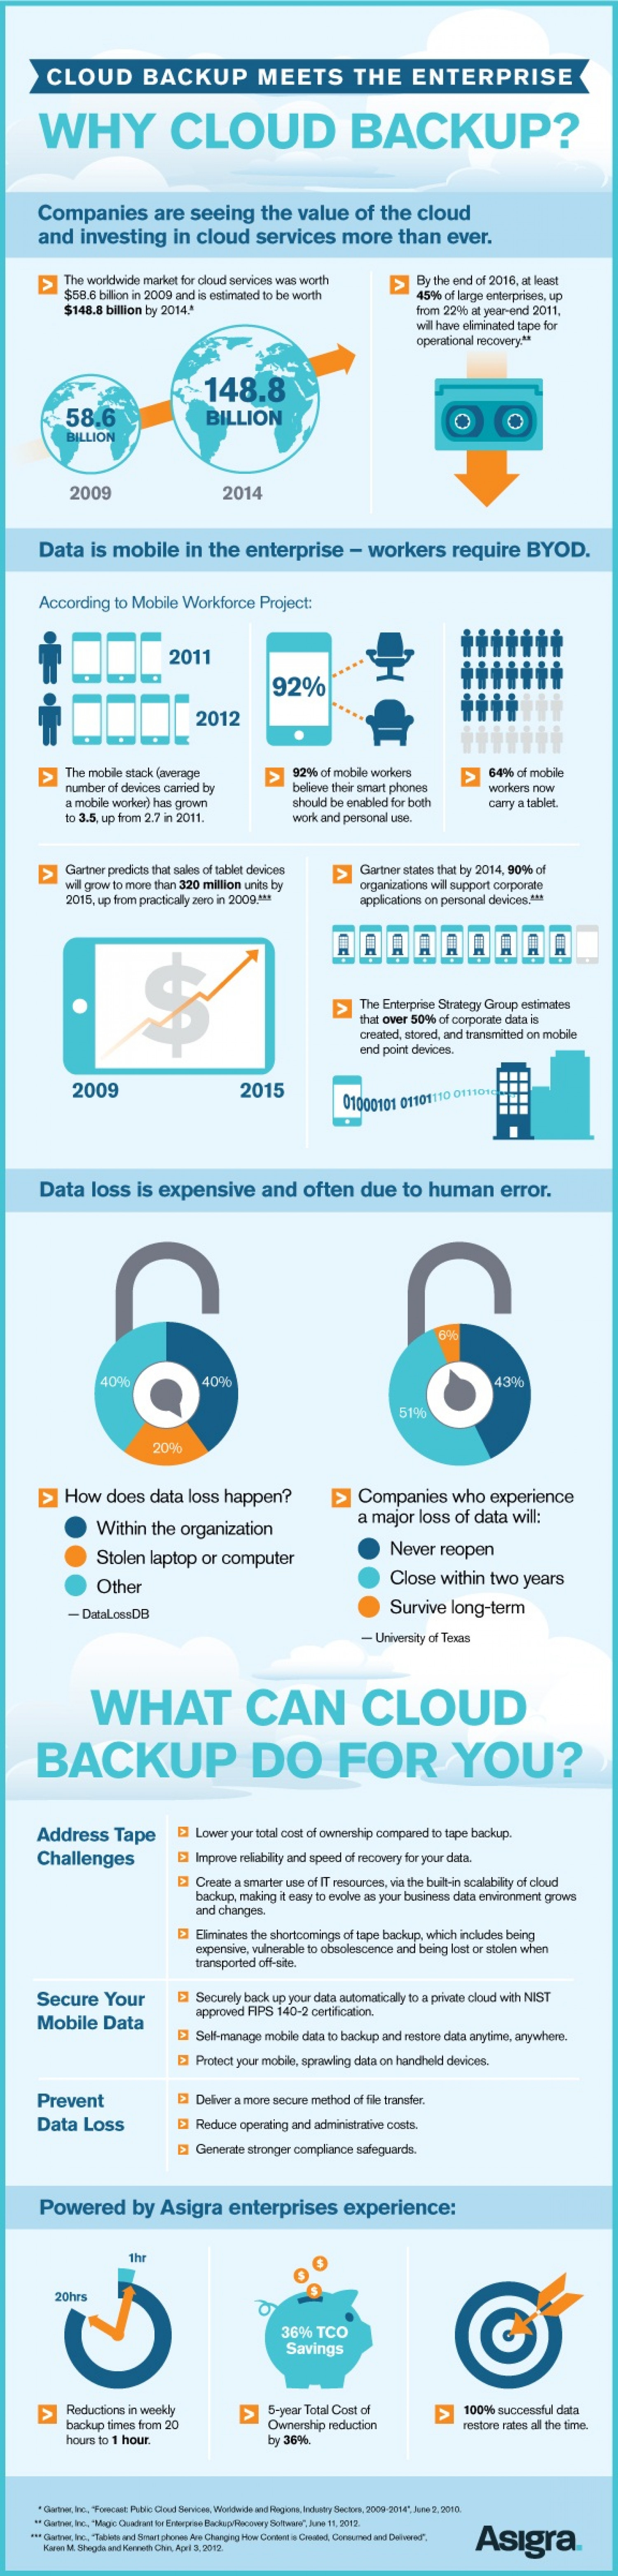 Cloud Backup Meets the Enterprise Infographic